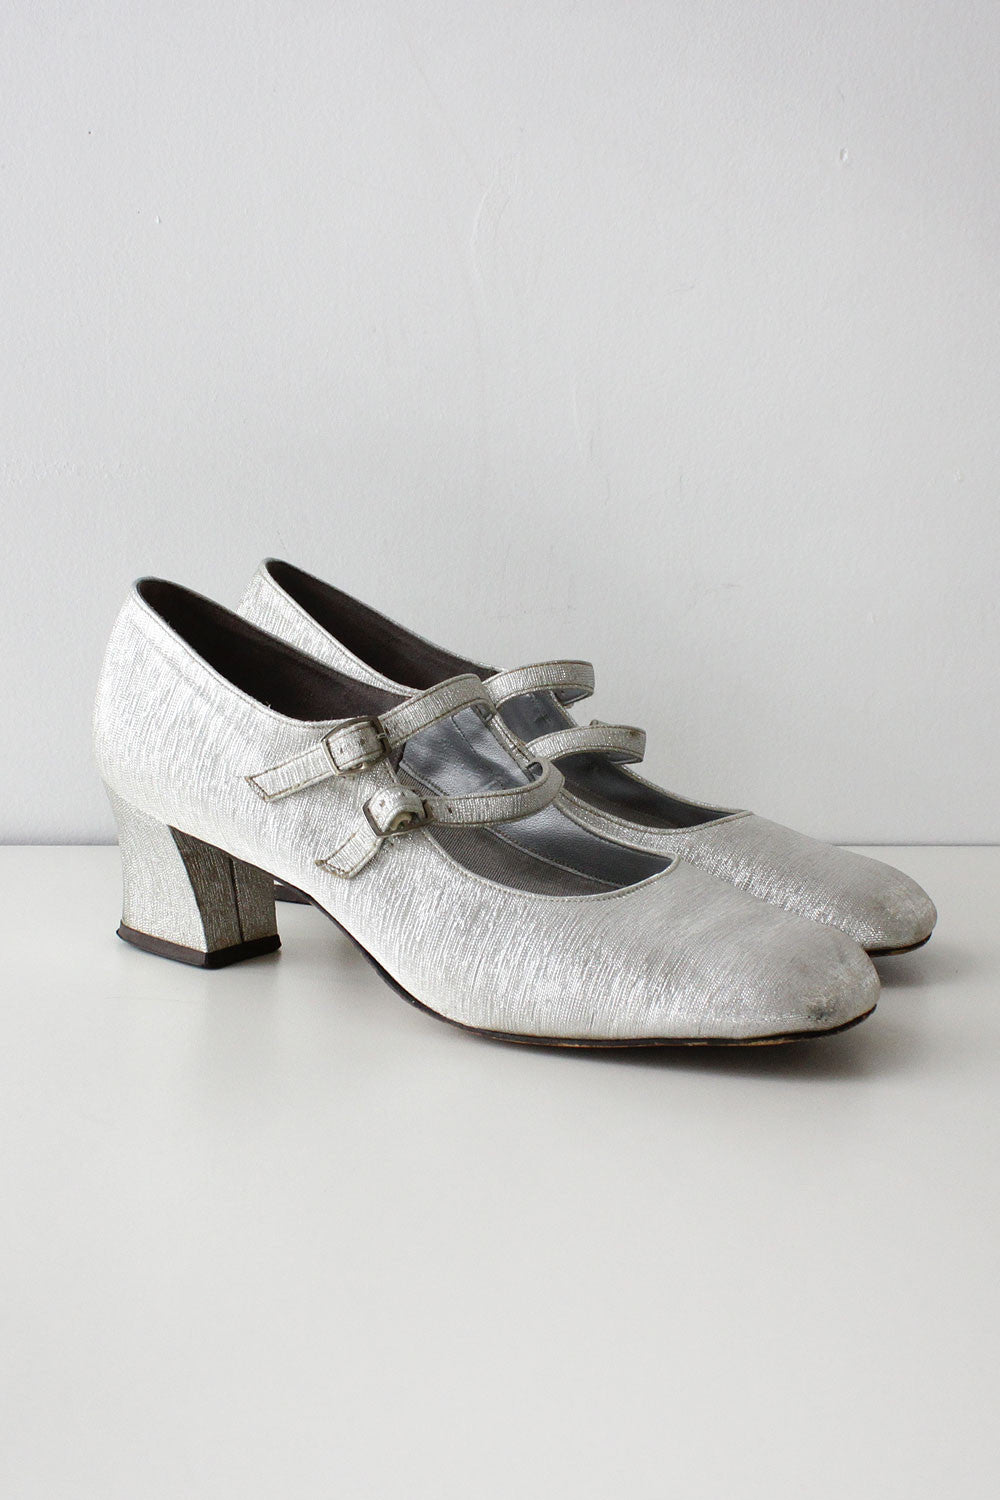 Coquette Metallic Mary Janes 8 1/2